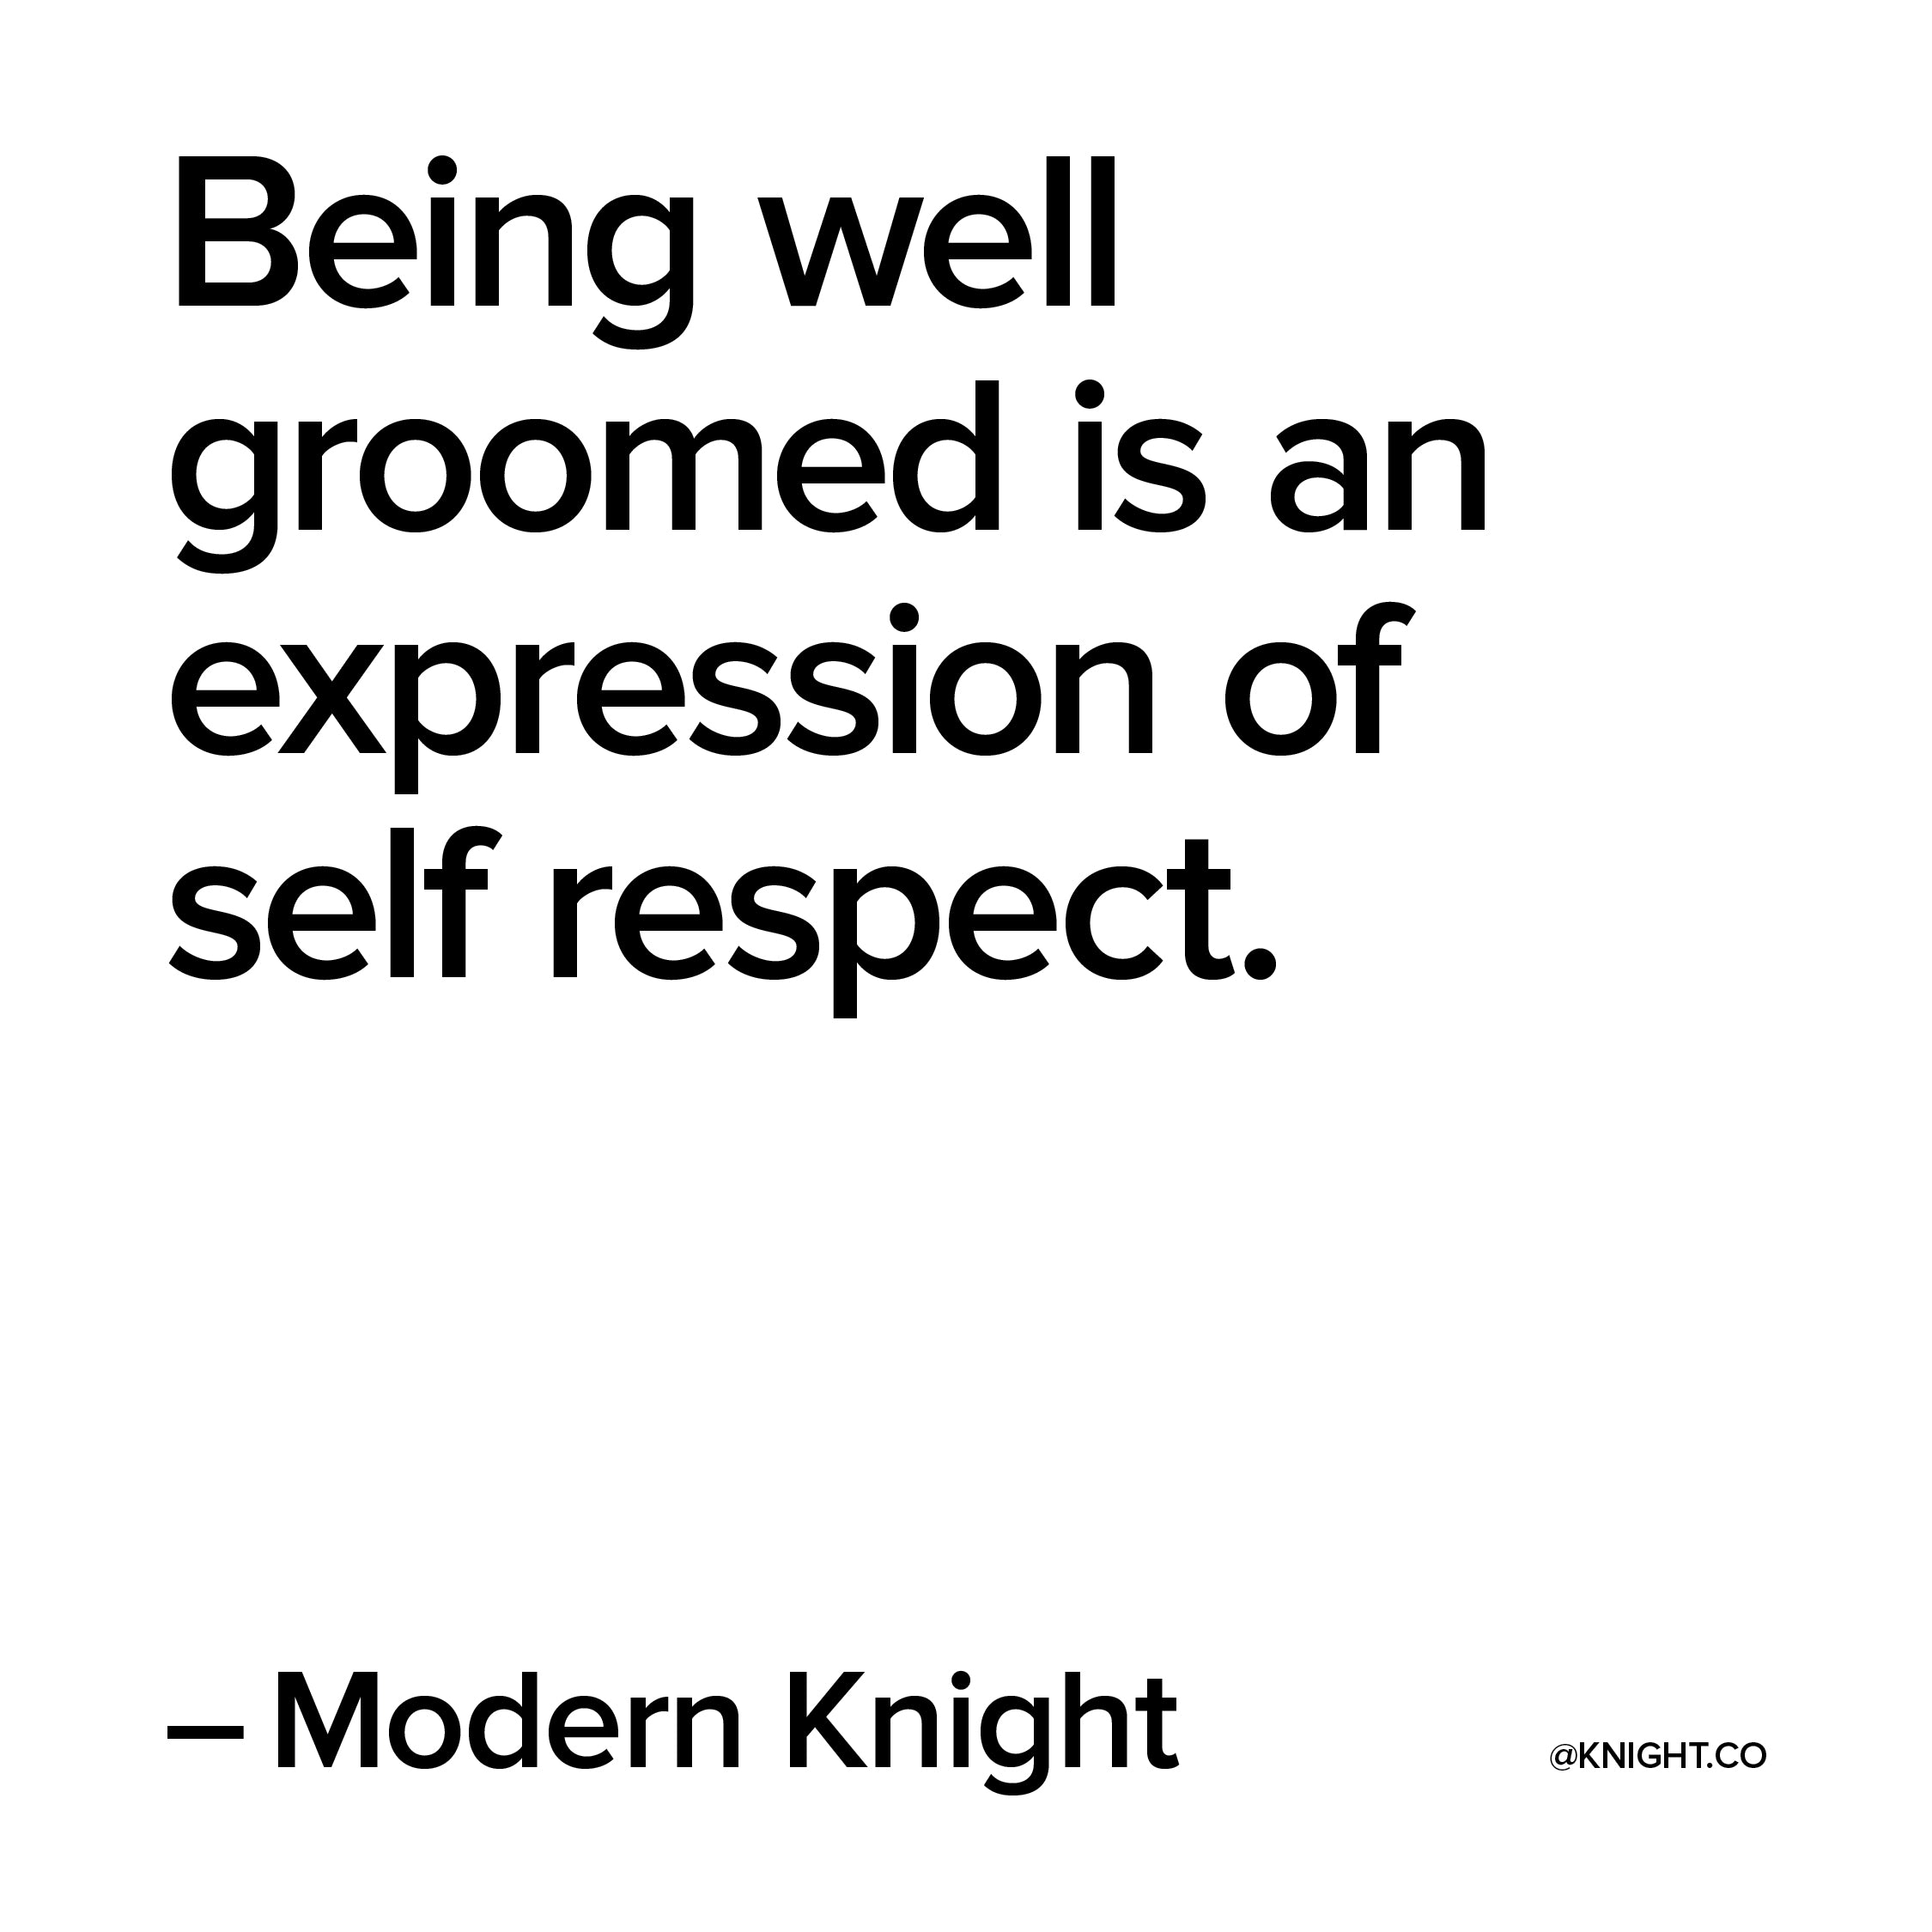 Being well groomed is an expression of self respect Modern Knight